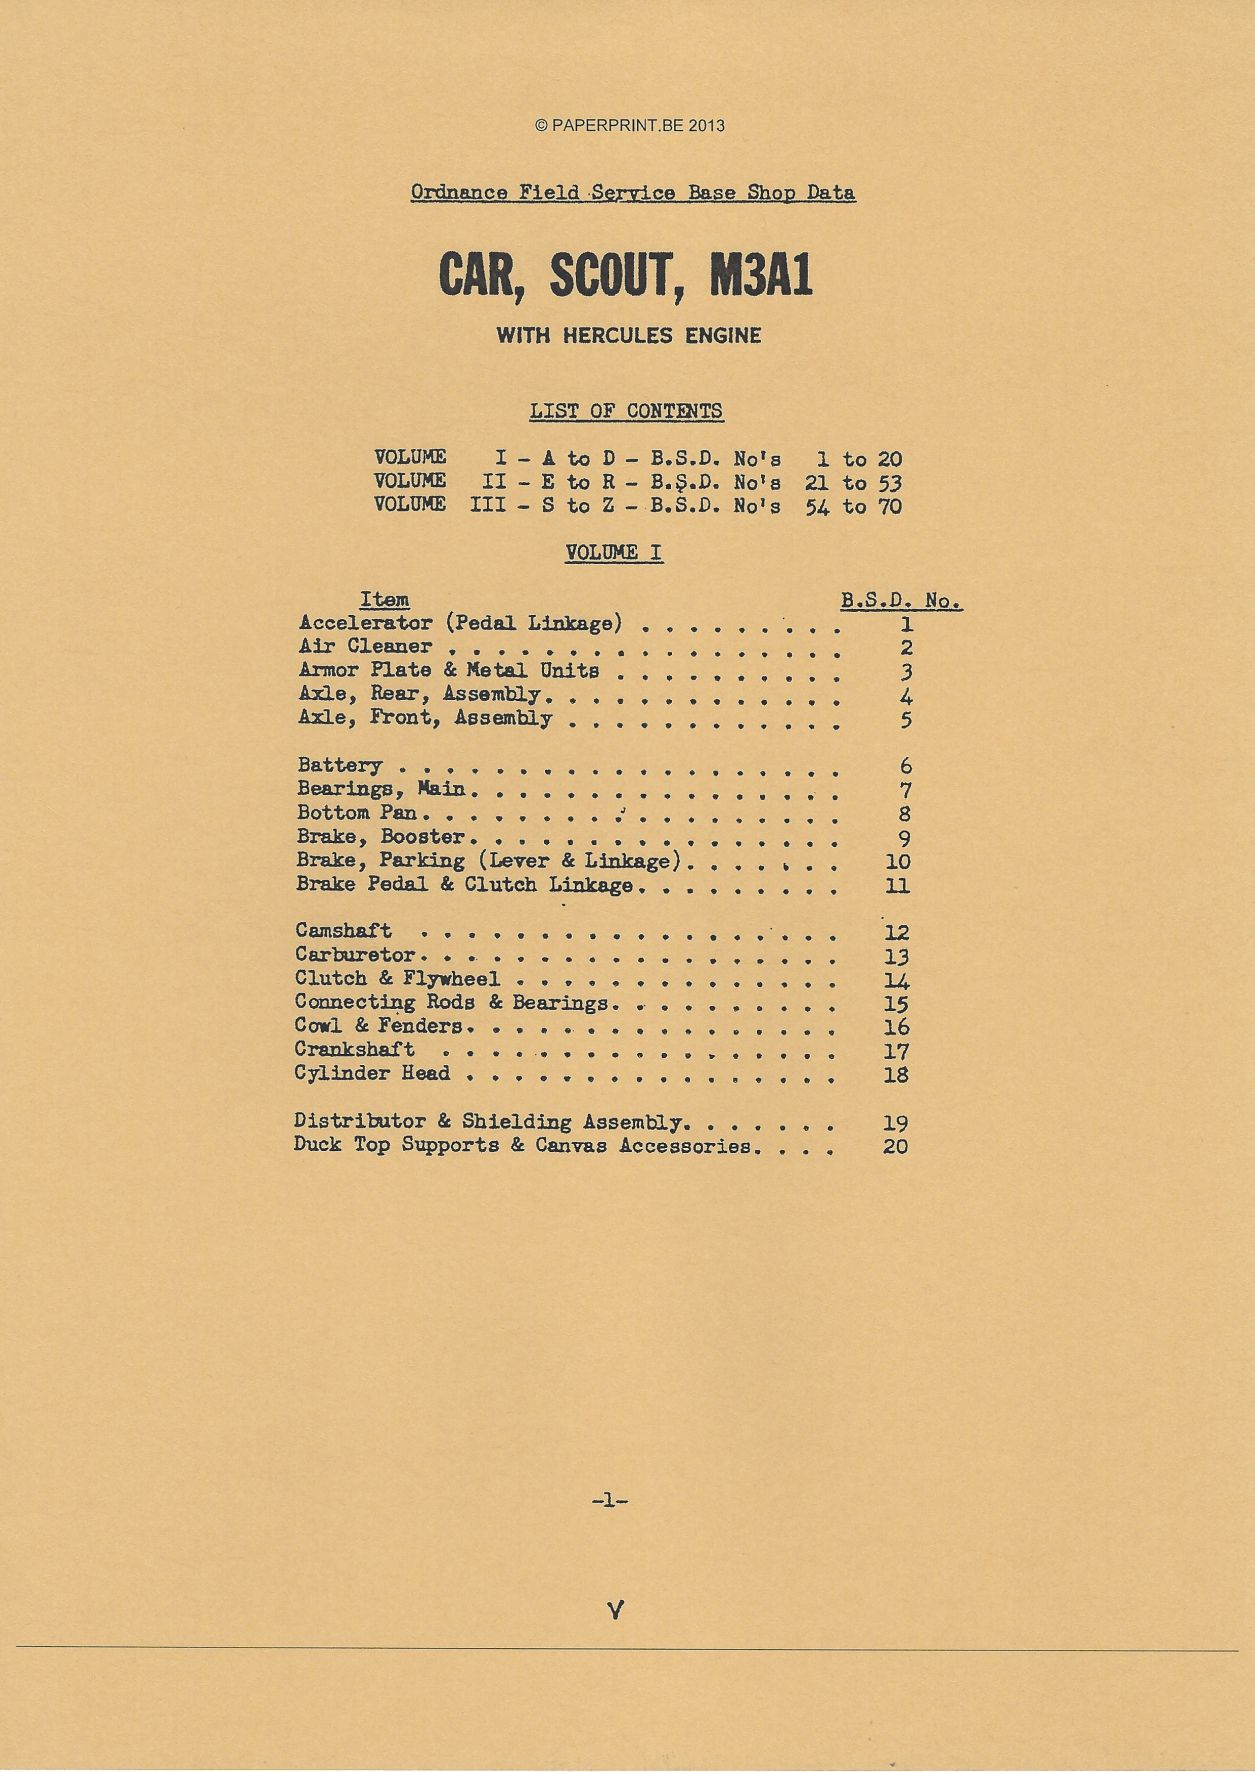 BASE SHOP MANUAL SCOUT CAR M3A1